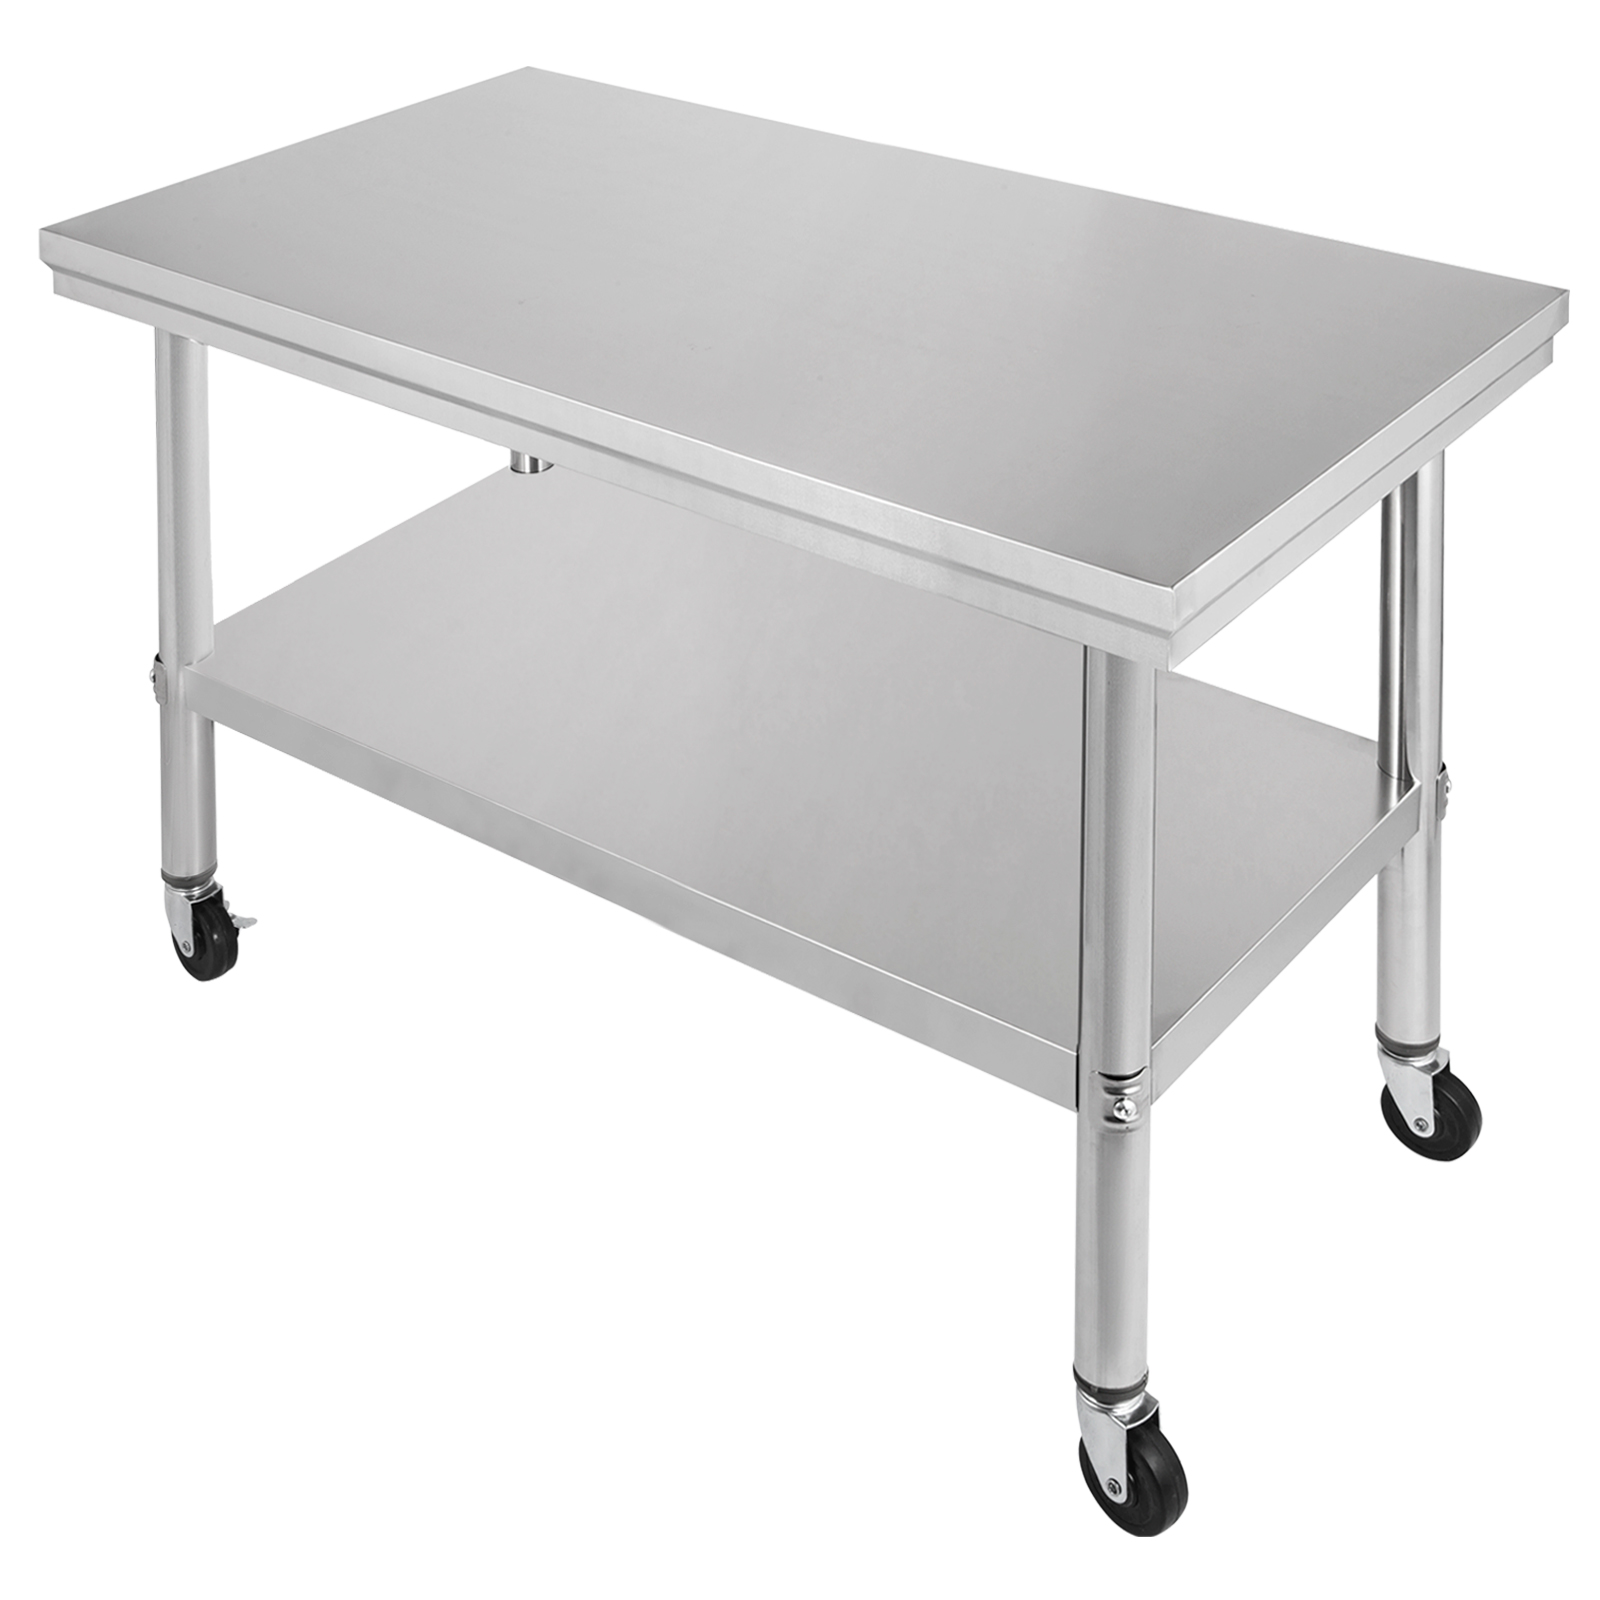 Stainless Steel Work Table 30 Quot X 24 Quot Food Prep Utility